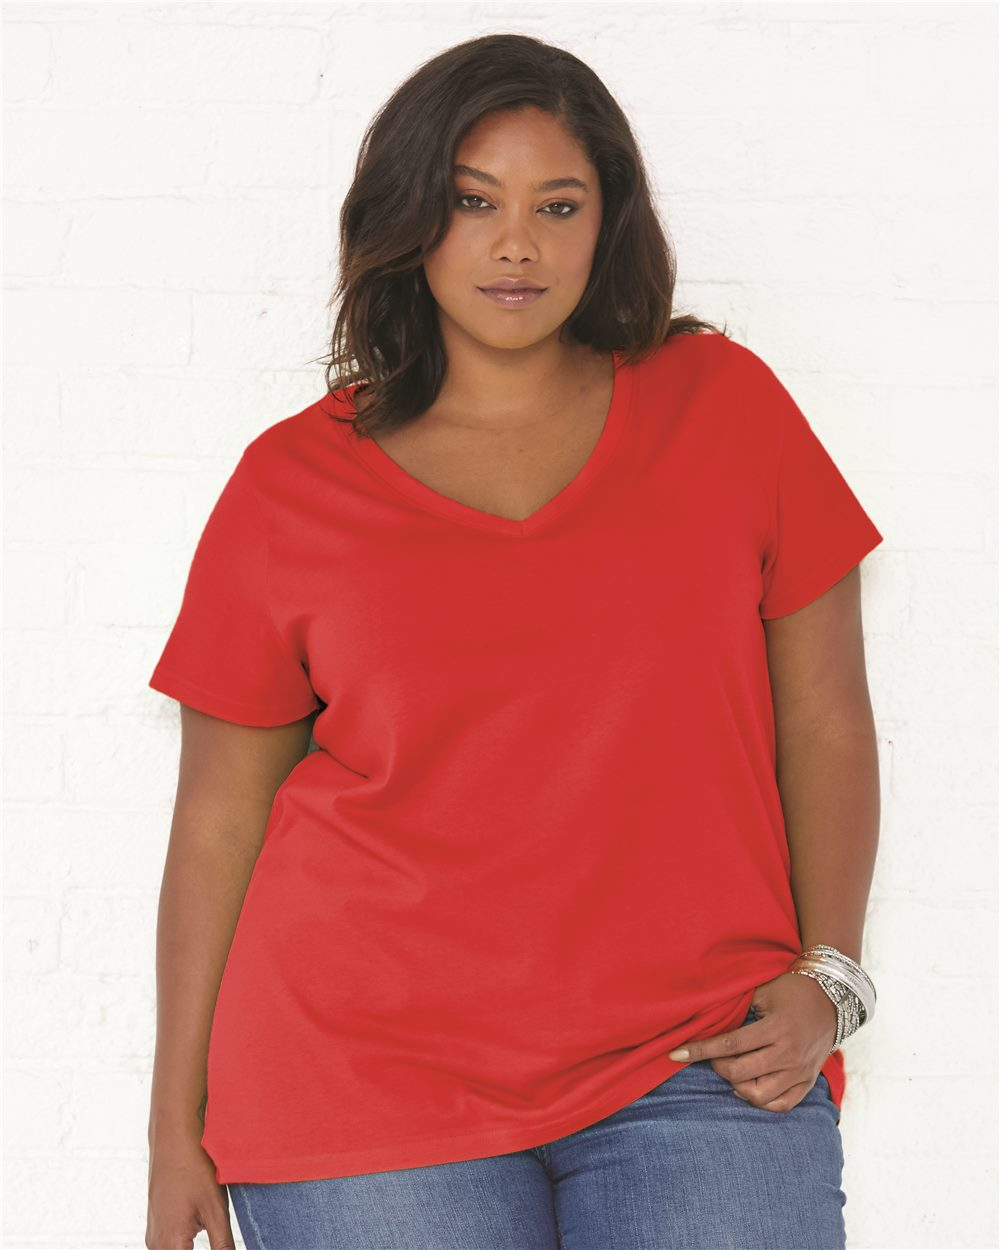 LAT Curvy Collection Women's Premium Jersey V-Neck Tee